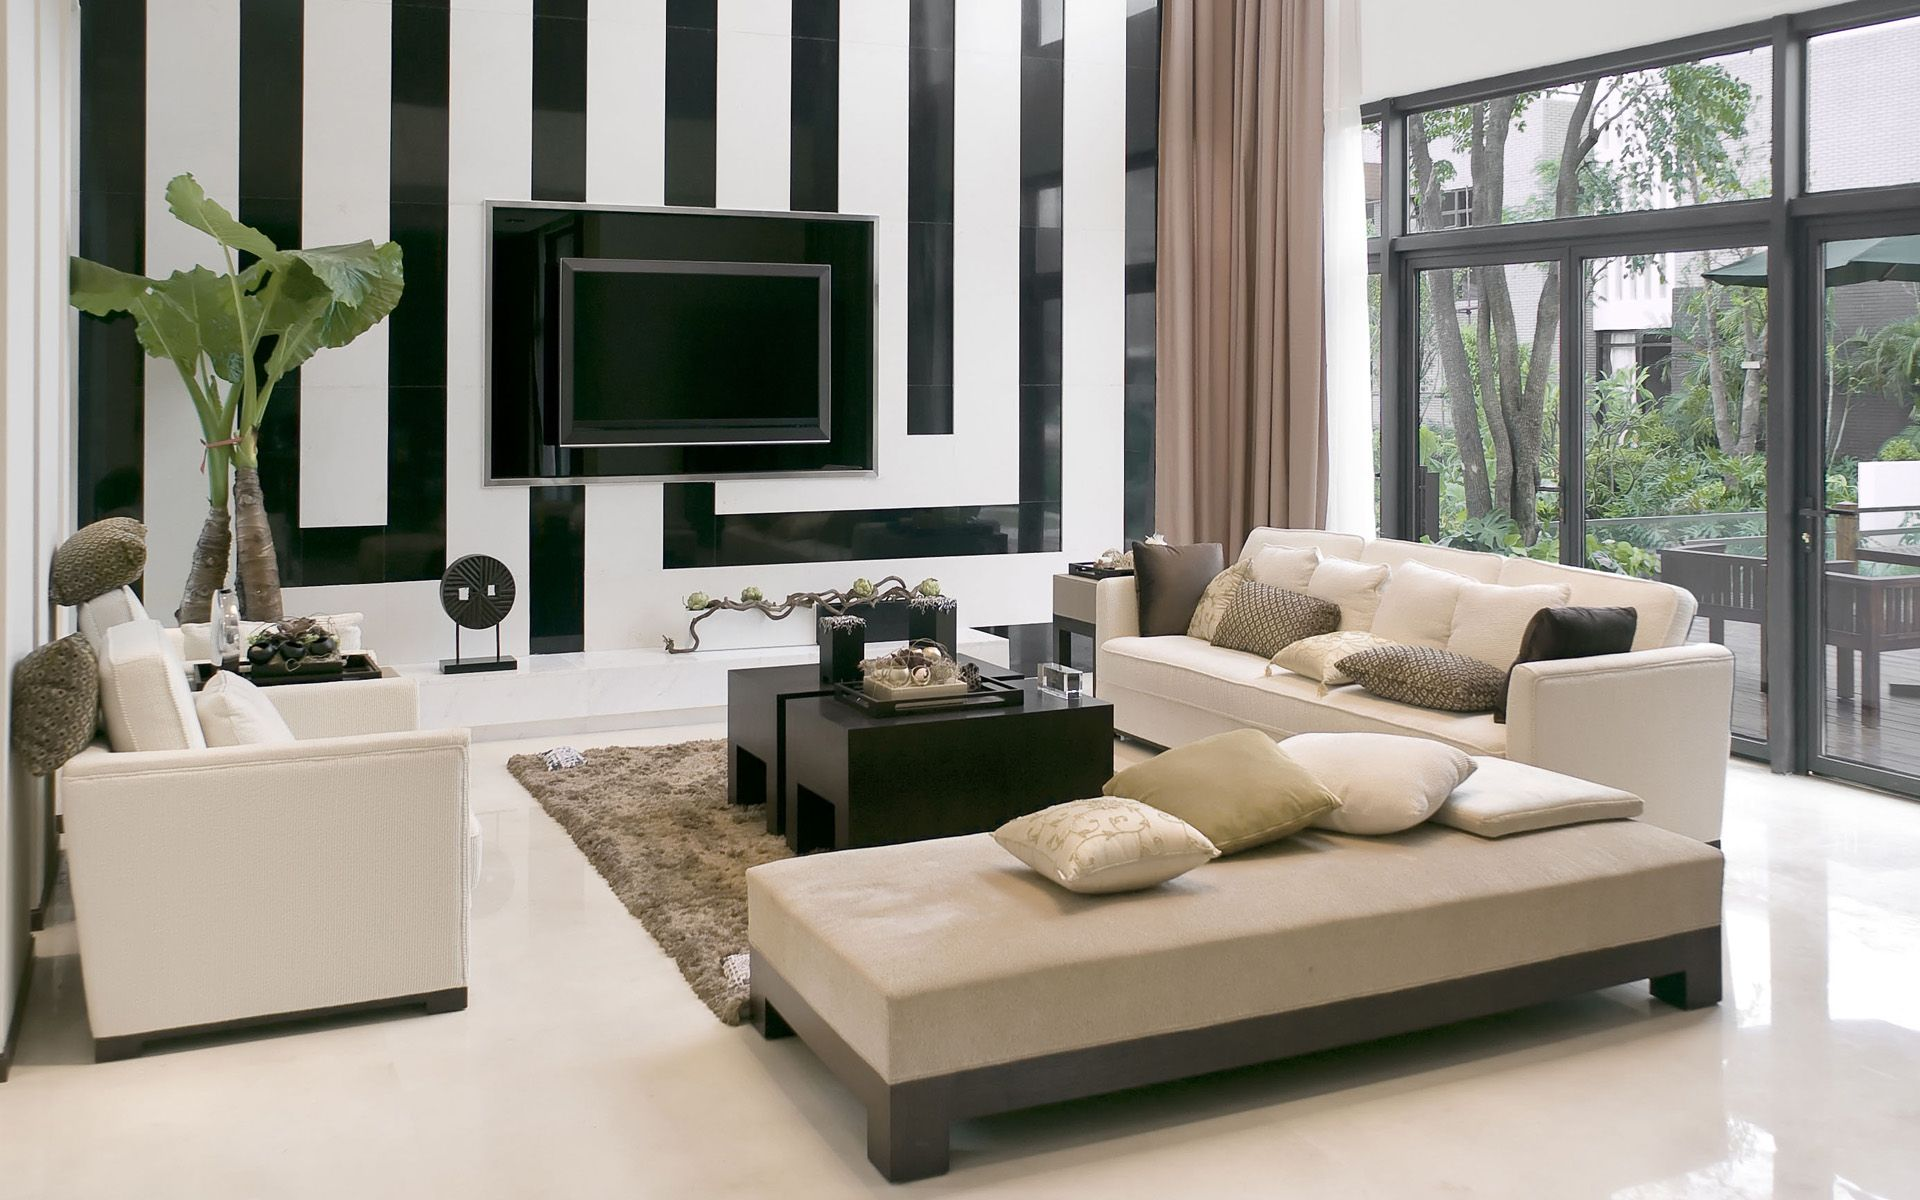 House DesignCaptivating Black And White Interior Design For Living Room With Modern Style Sofa